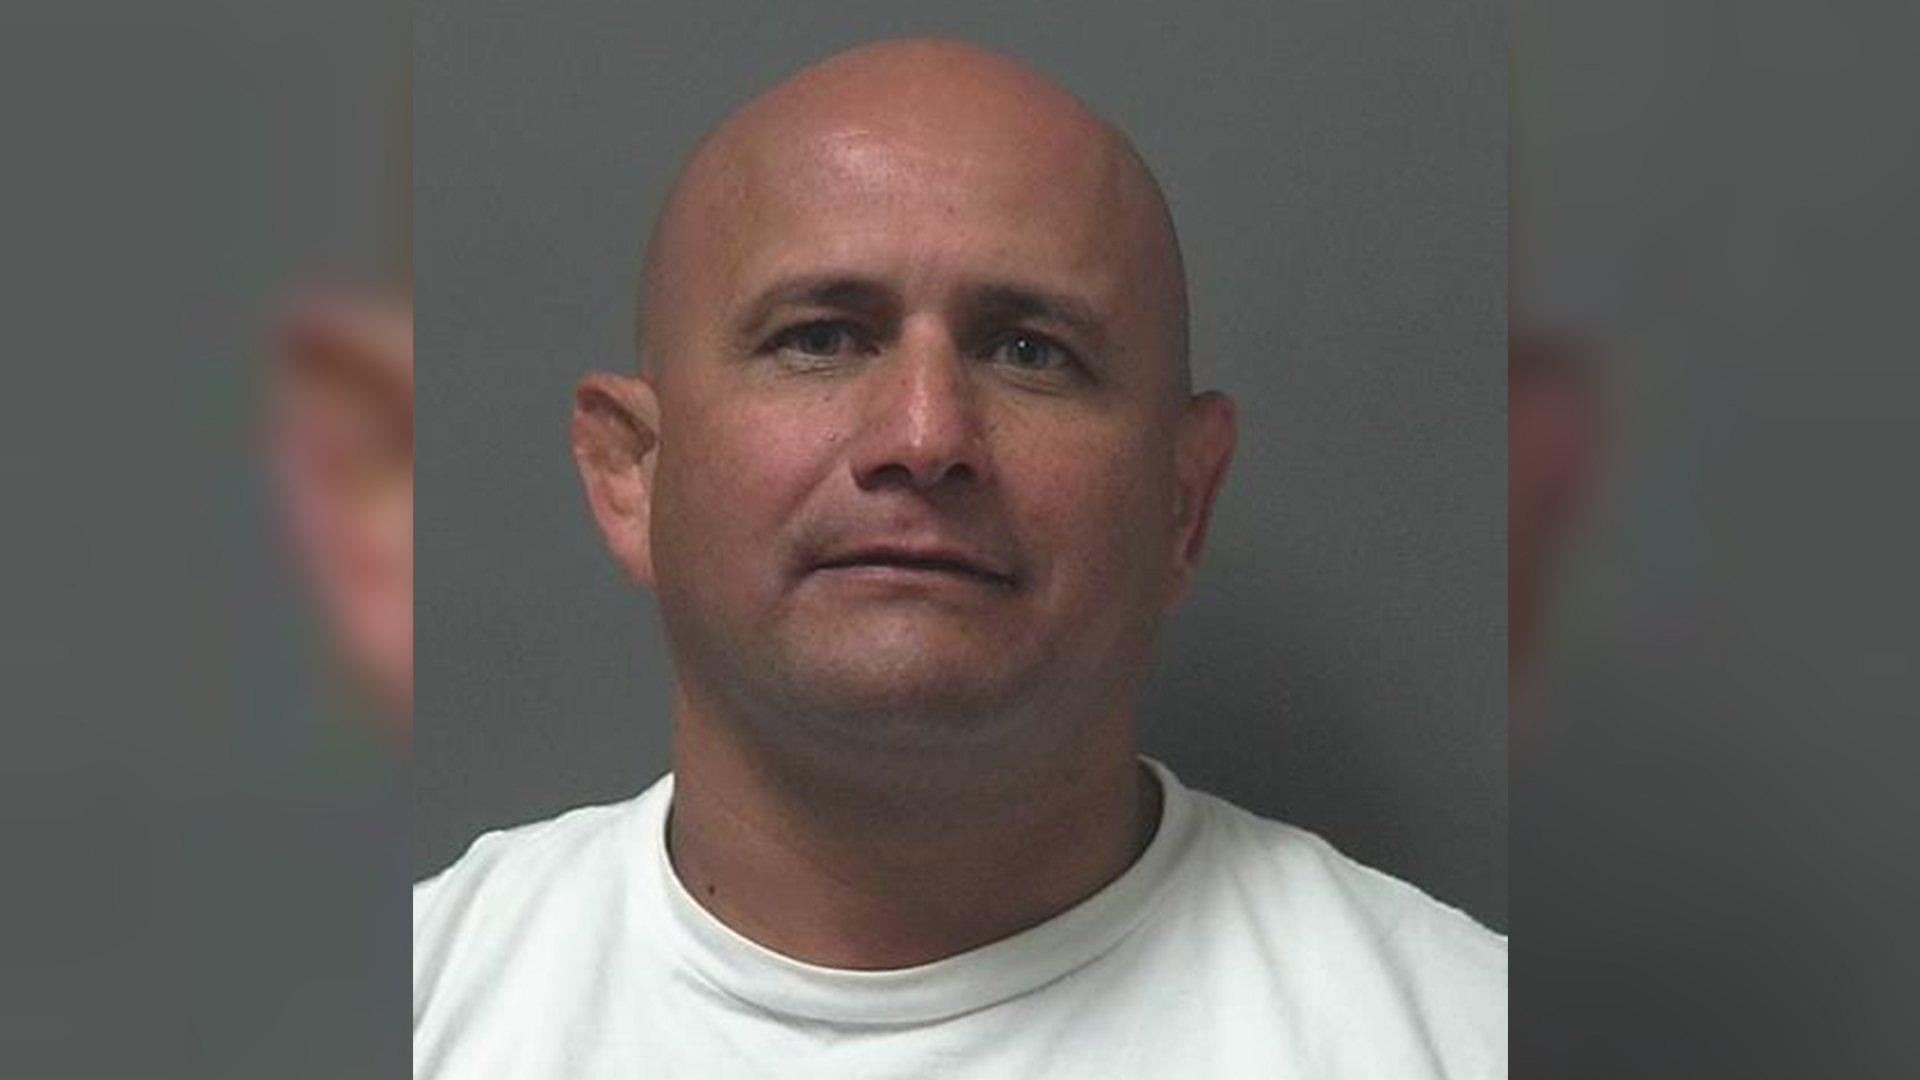 Former Sheriff's sergeant indicted on rape and domestic violence charges